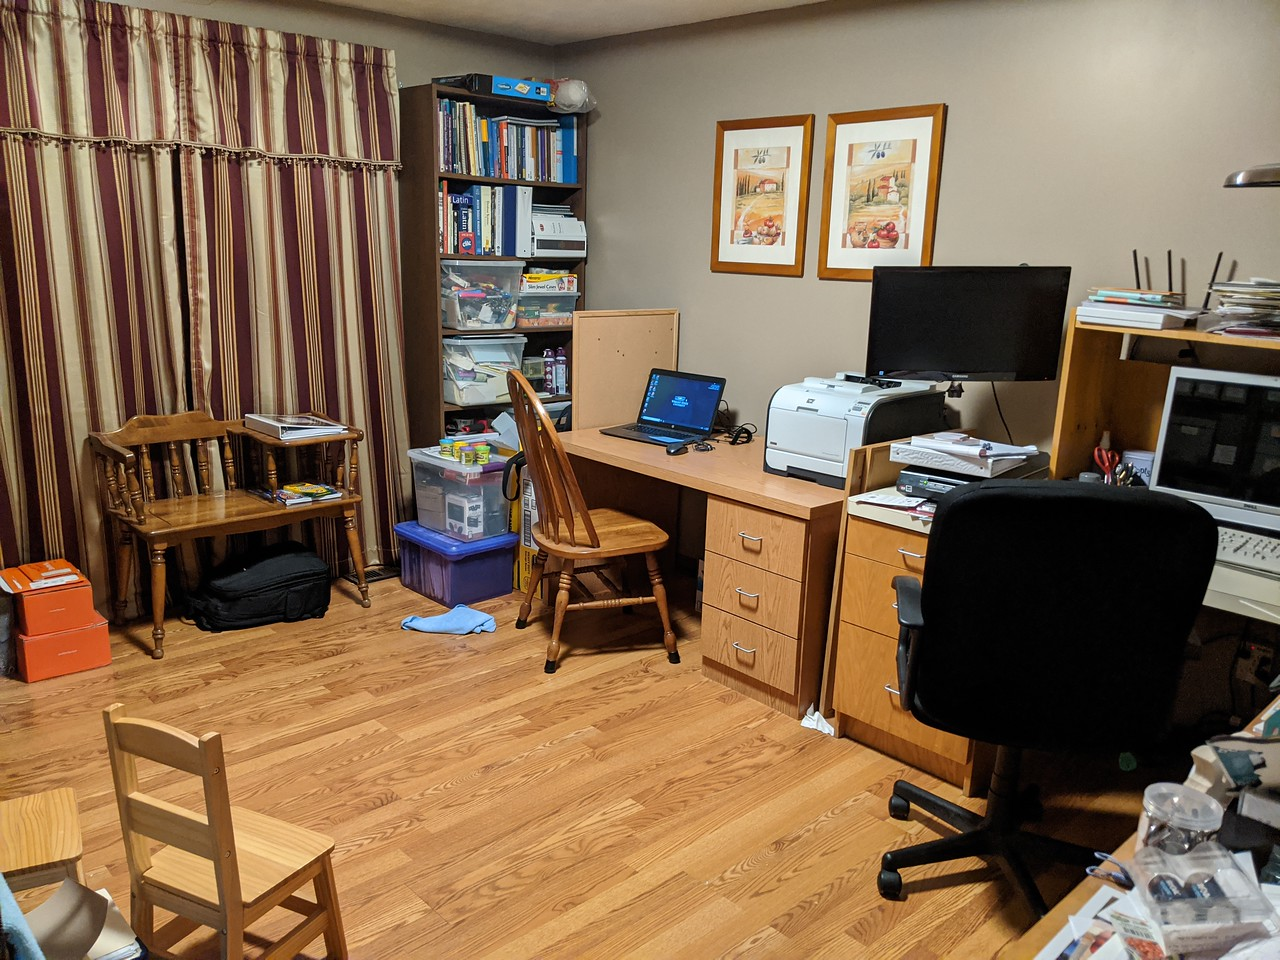 My cleaned-up at-home office, with second desk and library-loaner laptop at the ready, March 16, 2020